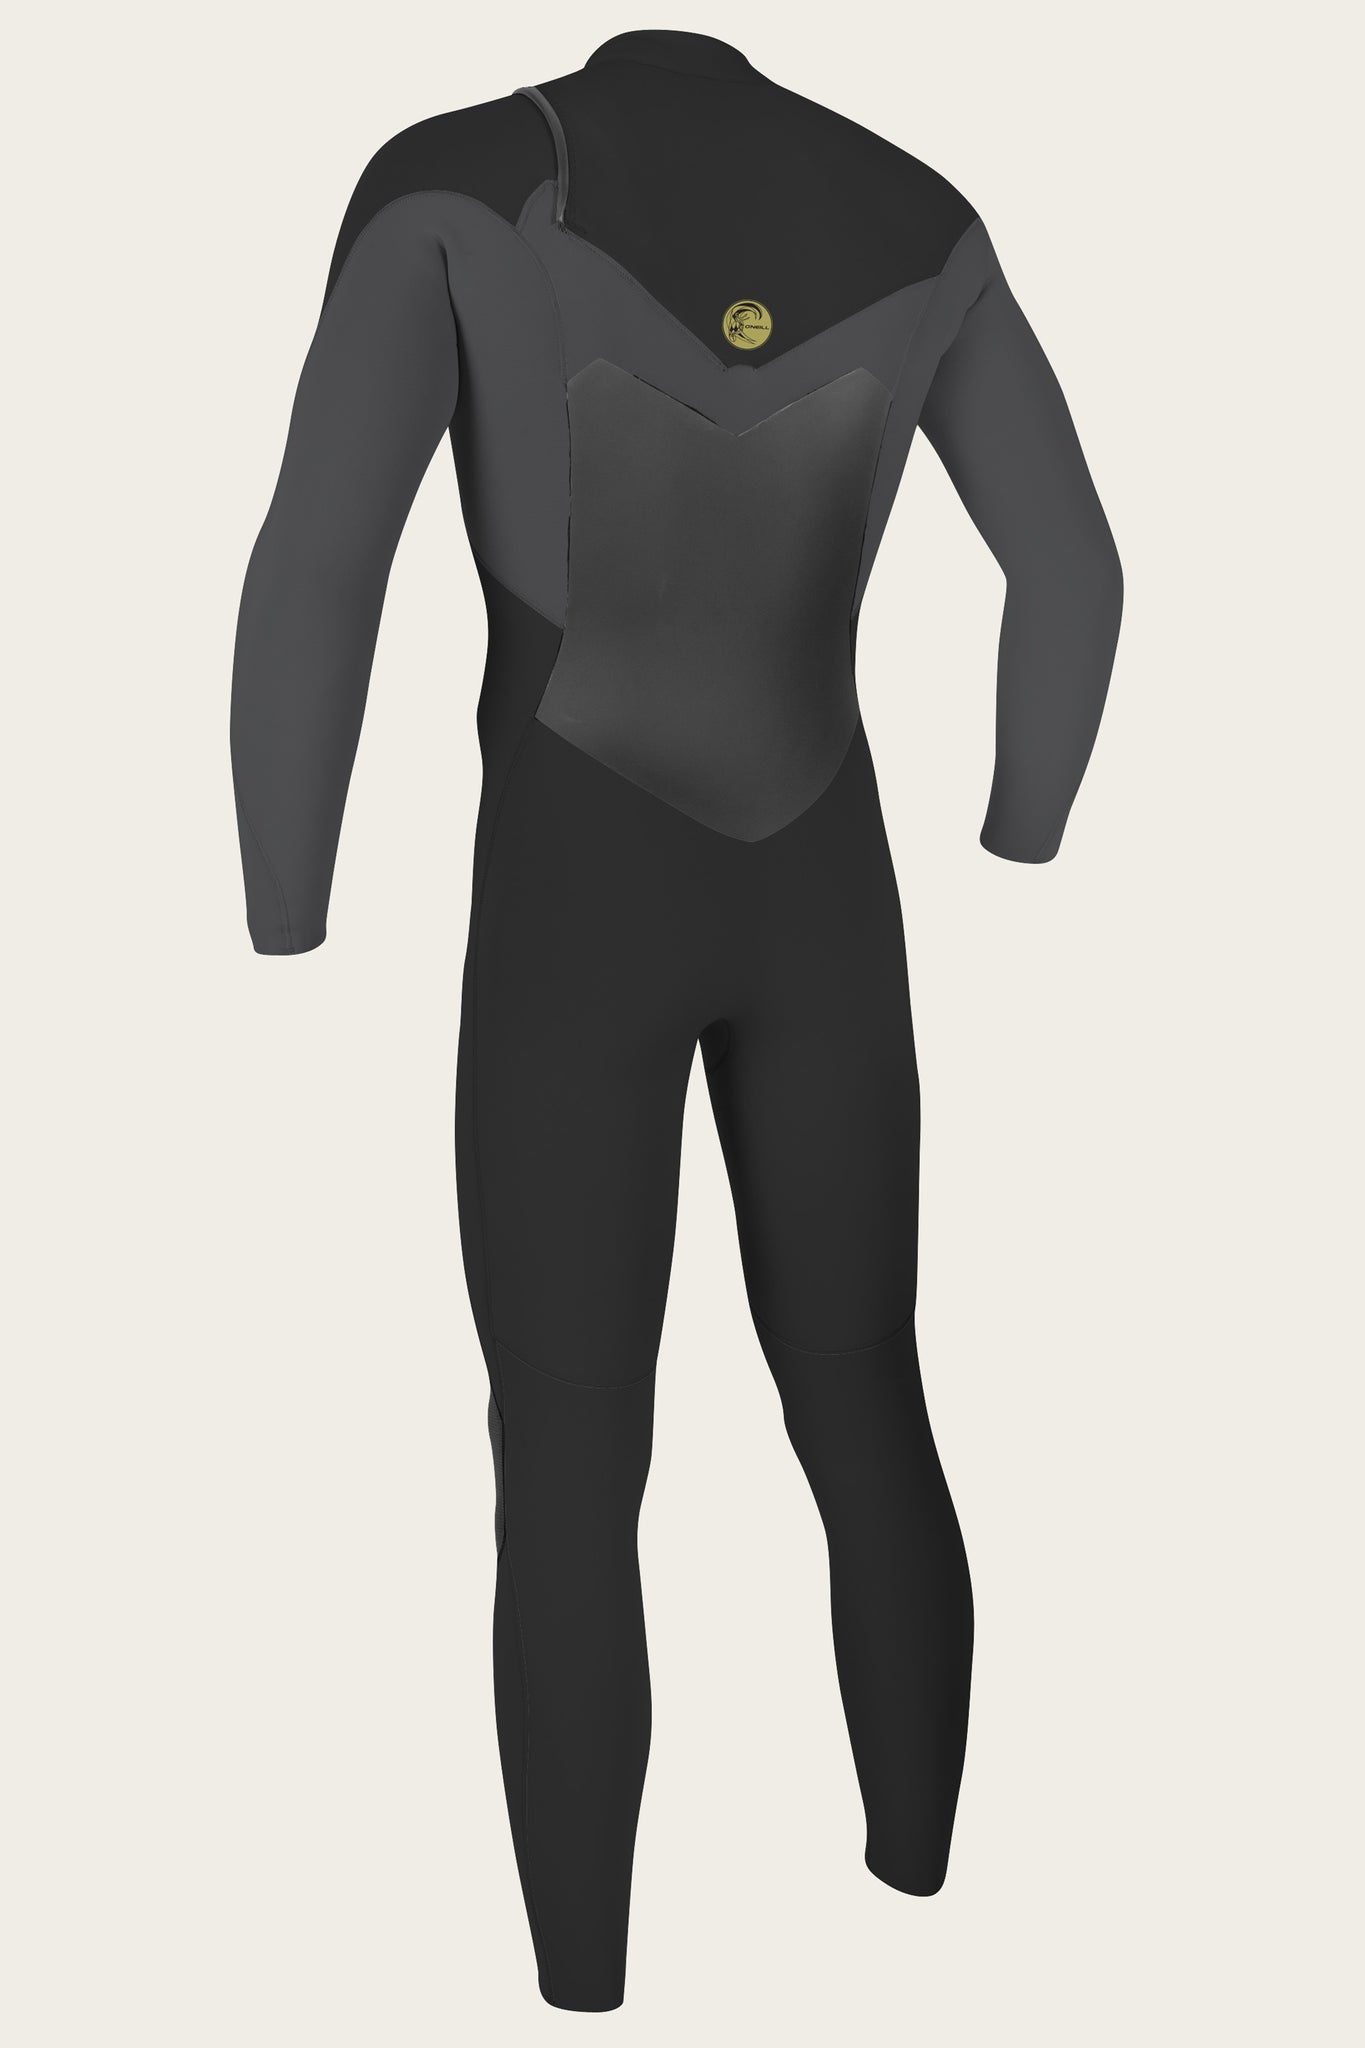 O'Riginal 4/3Mm Chest Zip Full Wetsuit - Mniteoil/Smoke | O'Neill